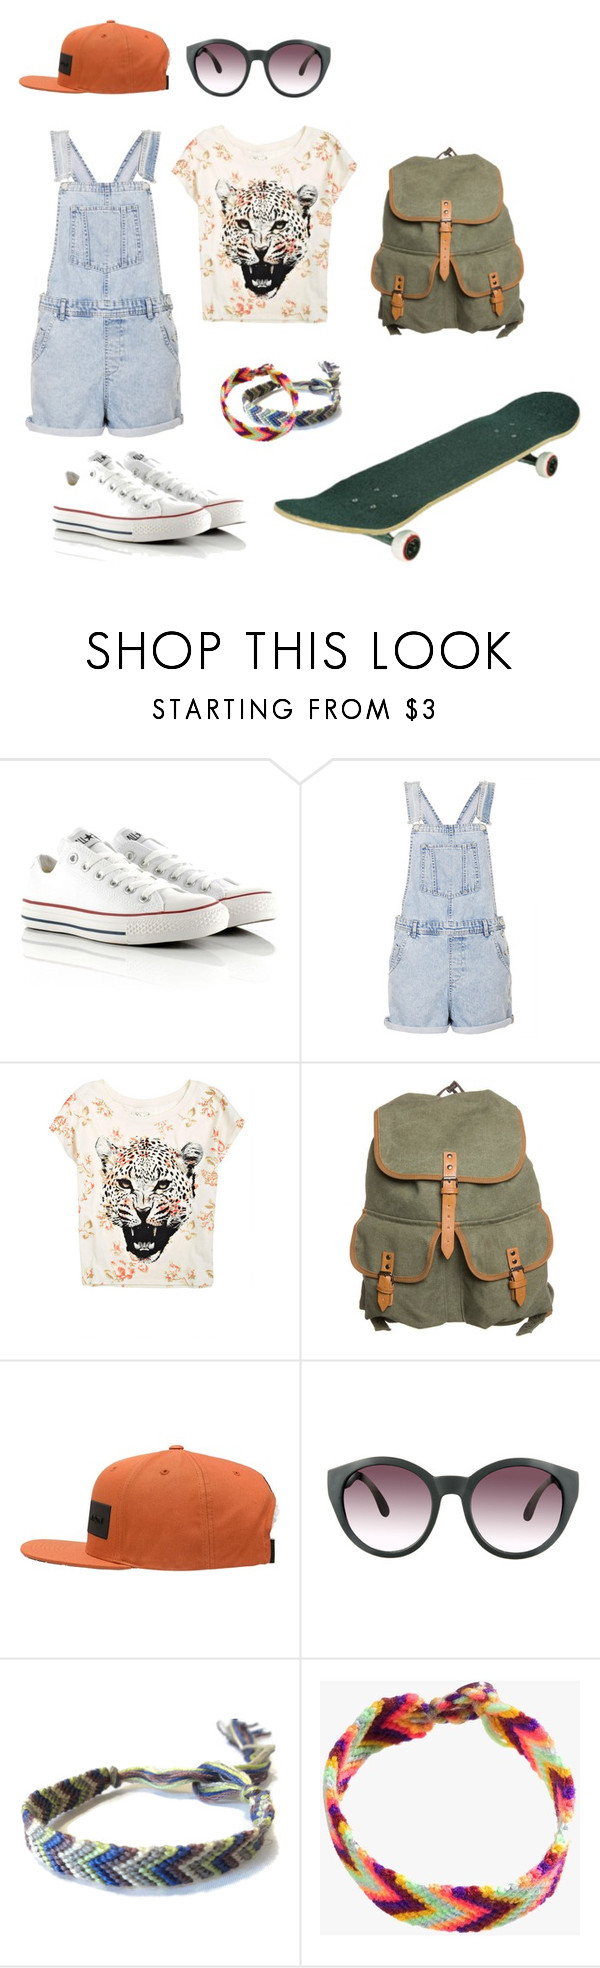 """""""not finished"""" by momockapai ❤ liked on Polyvore featuring Converse, Topshop, dELiA*s, even&odd, Nixon, ASOS and Jewel Rocks"""